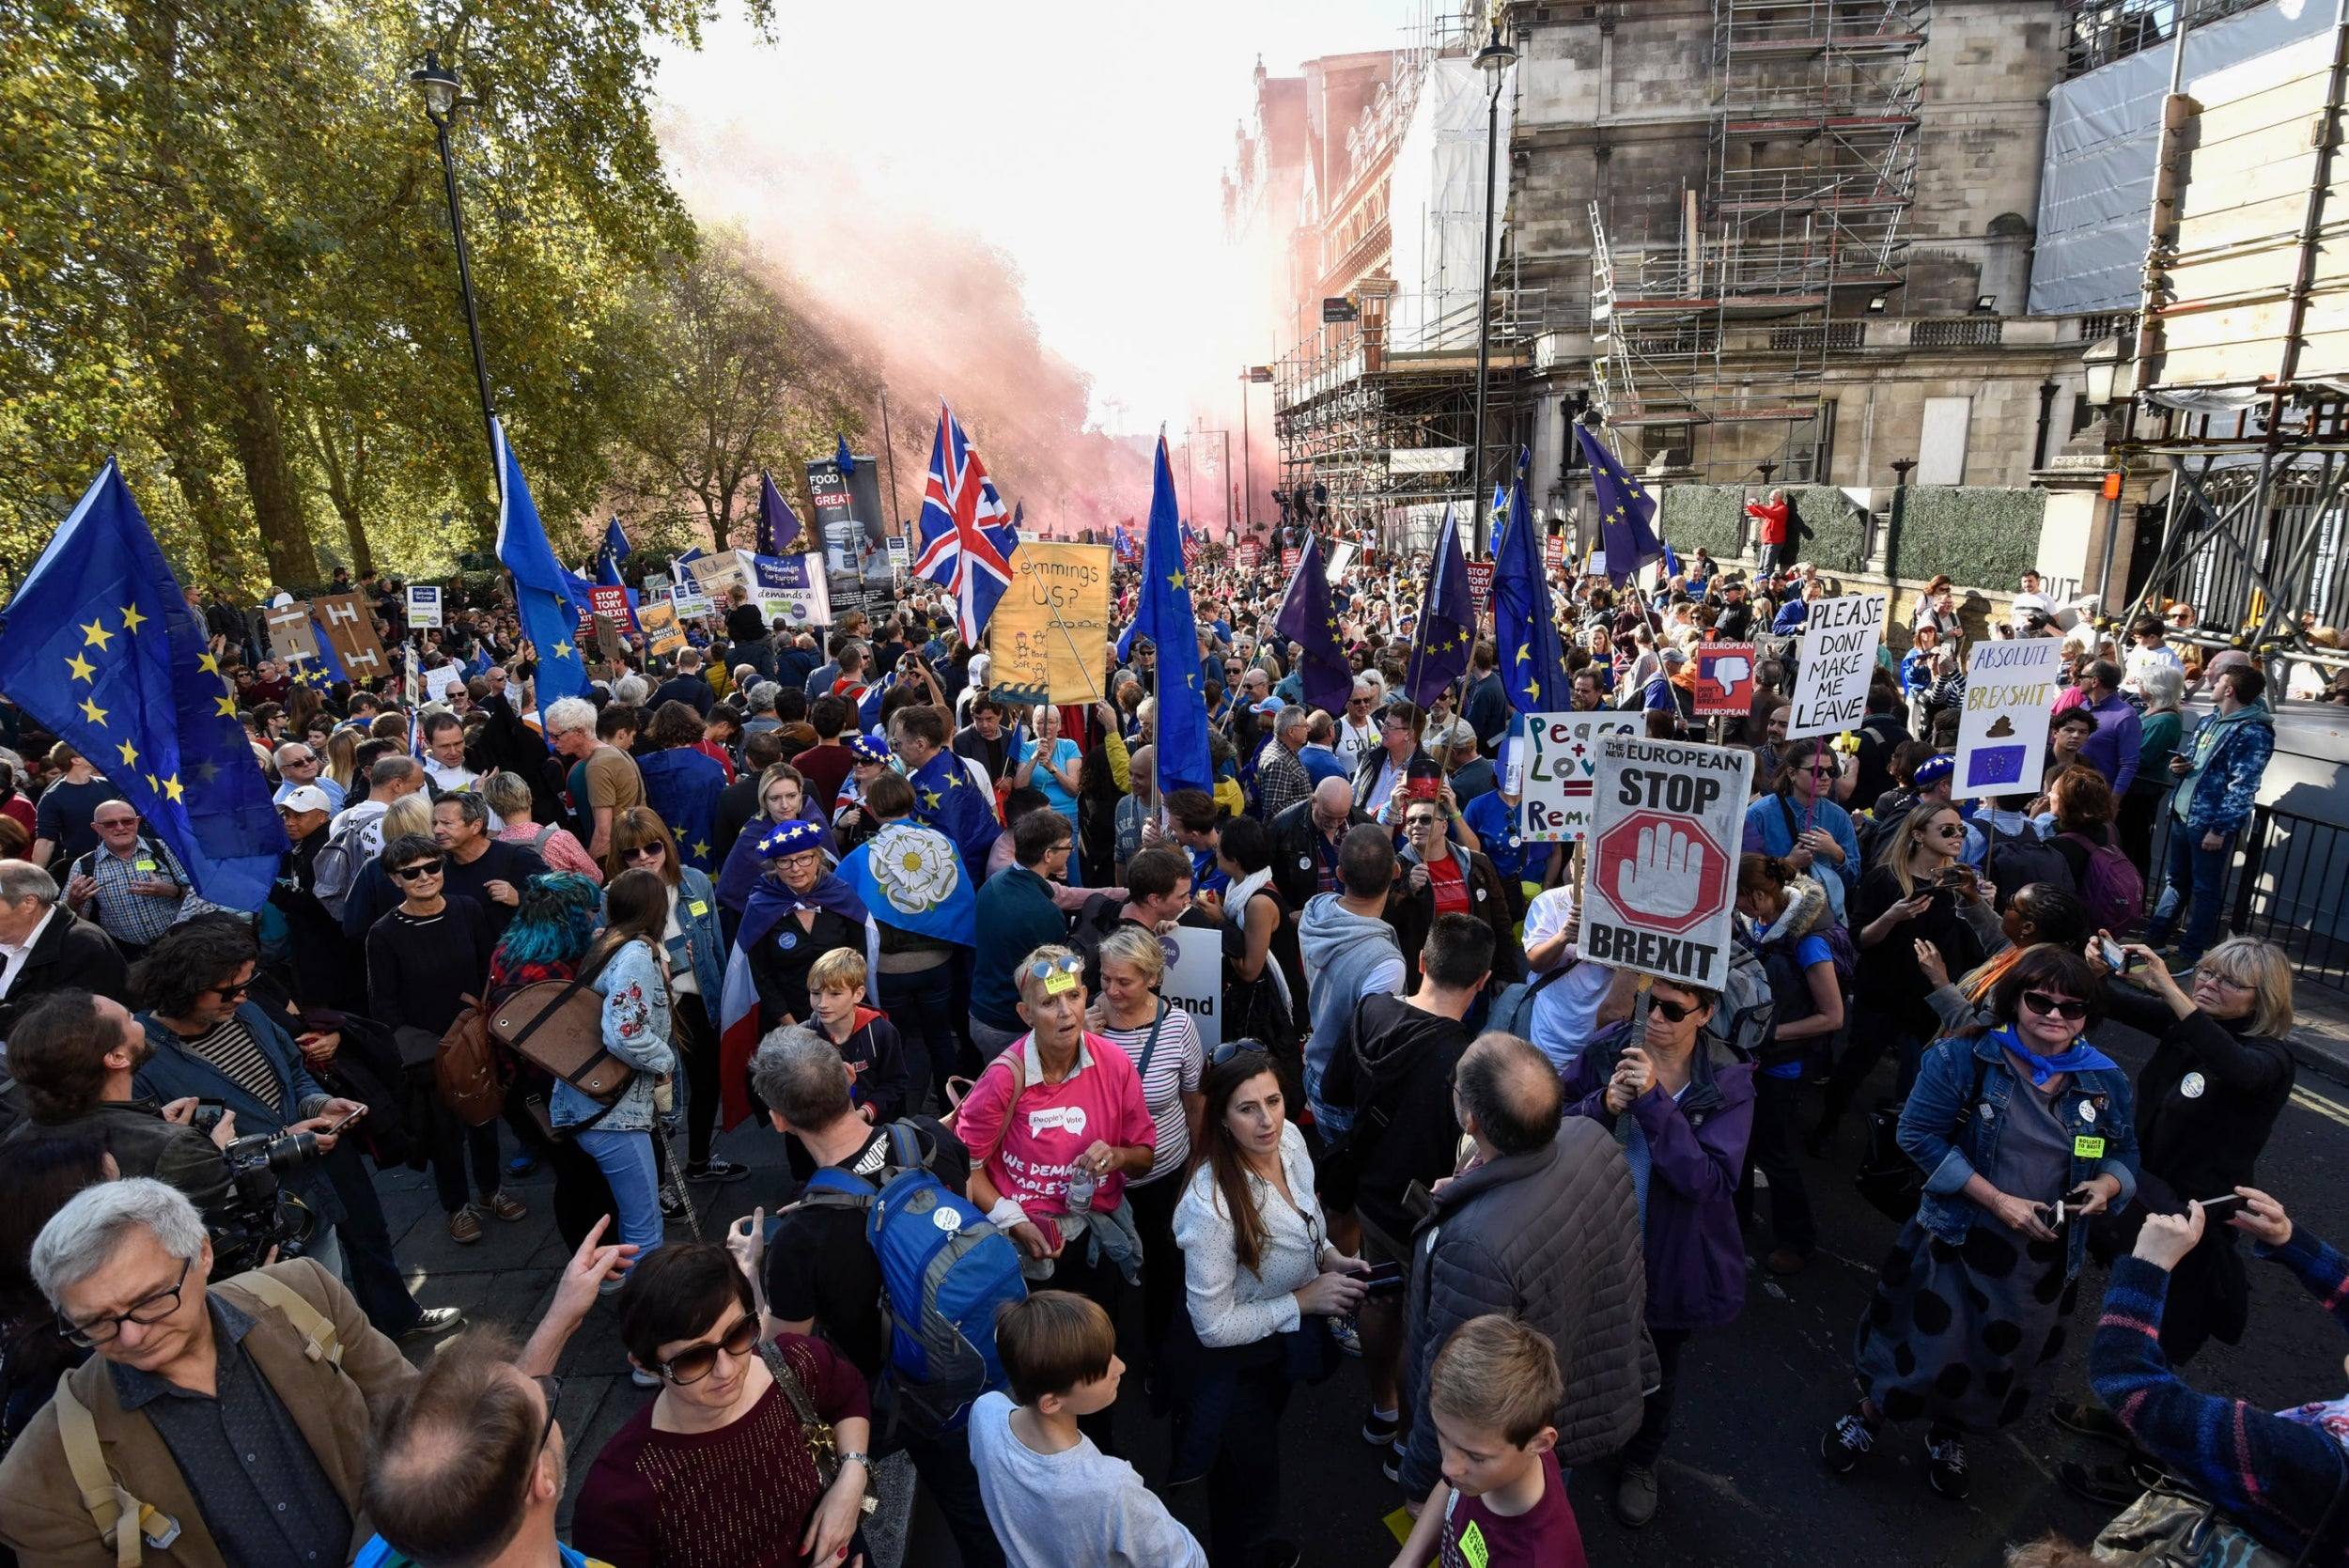 'A historic moment': 670,000 march to demand Final Say on Brexit at second biggest demo in a century